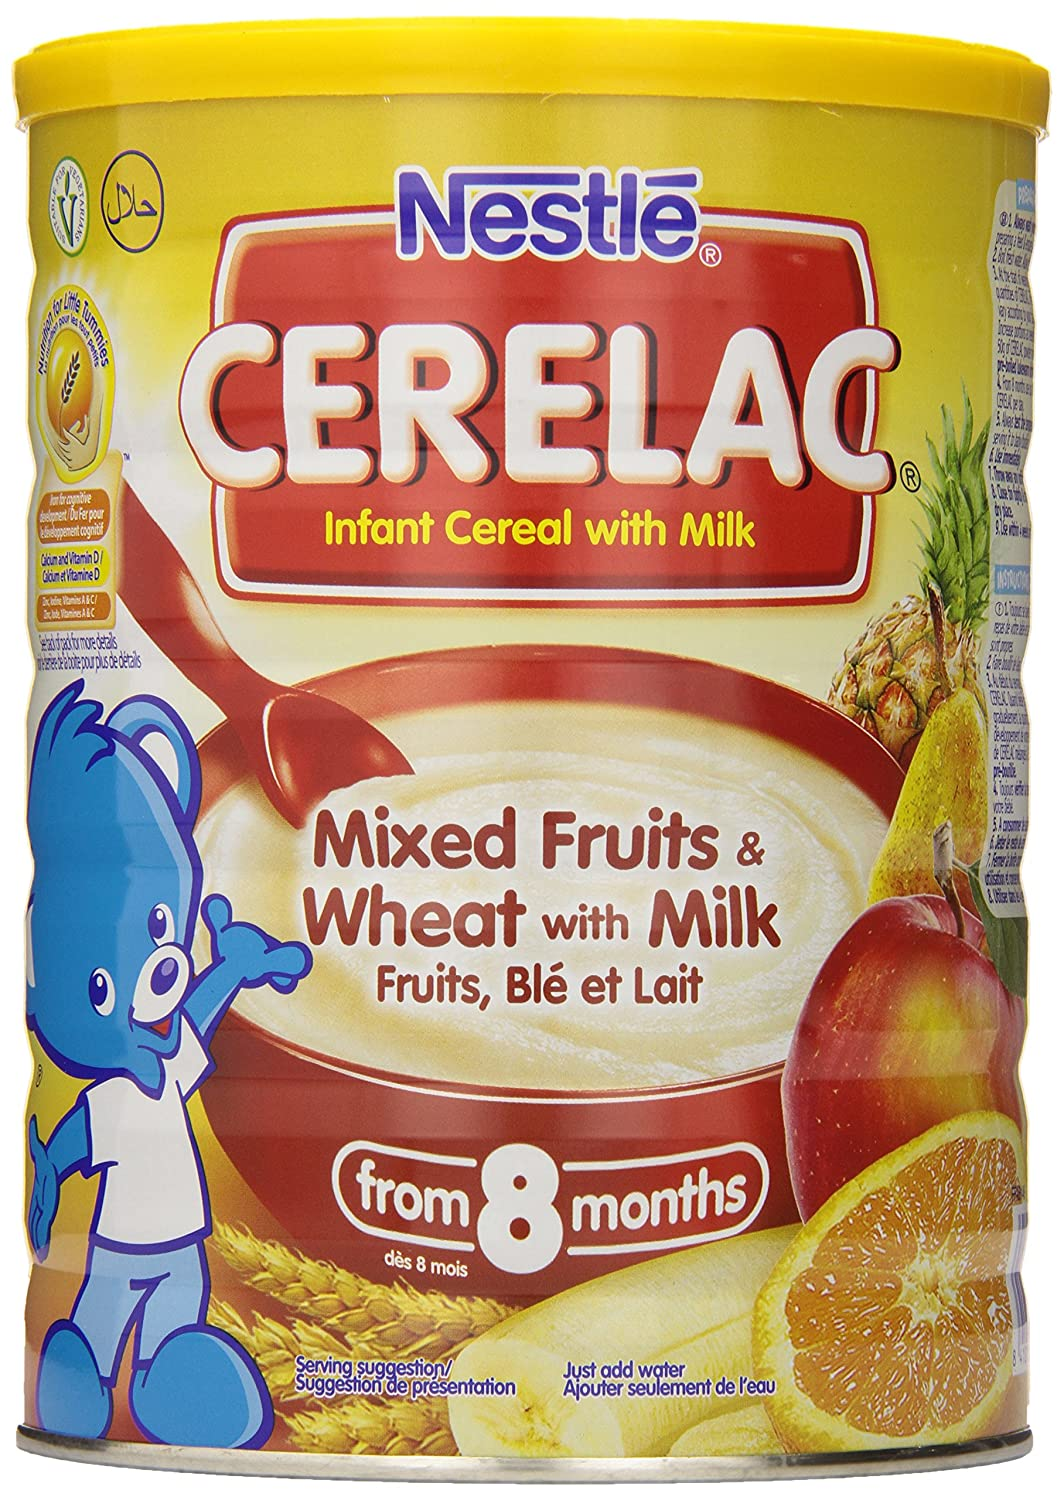 Nestle Cerelac Infant Cereal, Mixed Fruits & Wheat with Milk 1kg ...